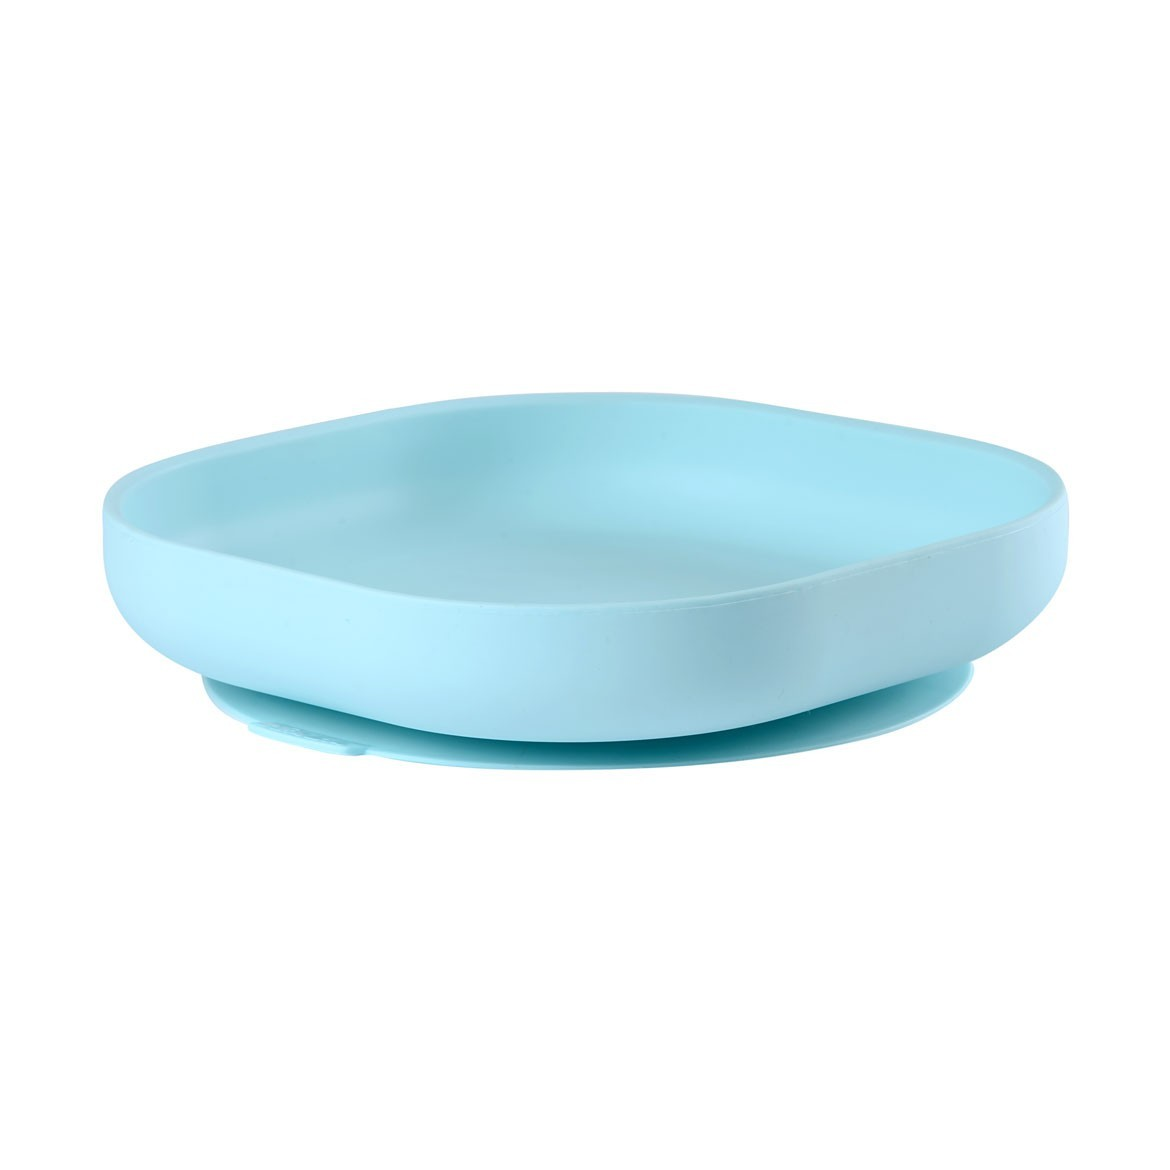 Silicone suction plate - LIGHT BLUE